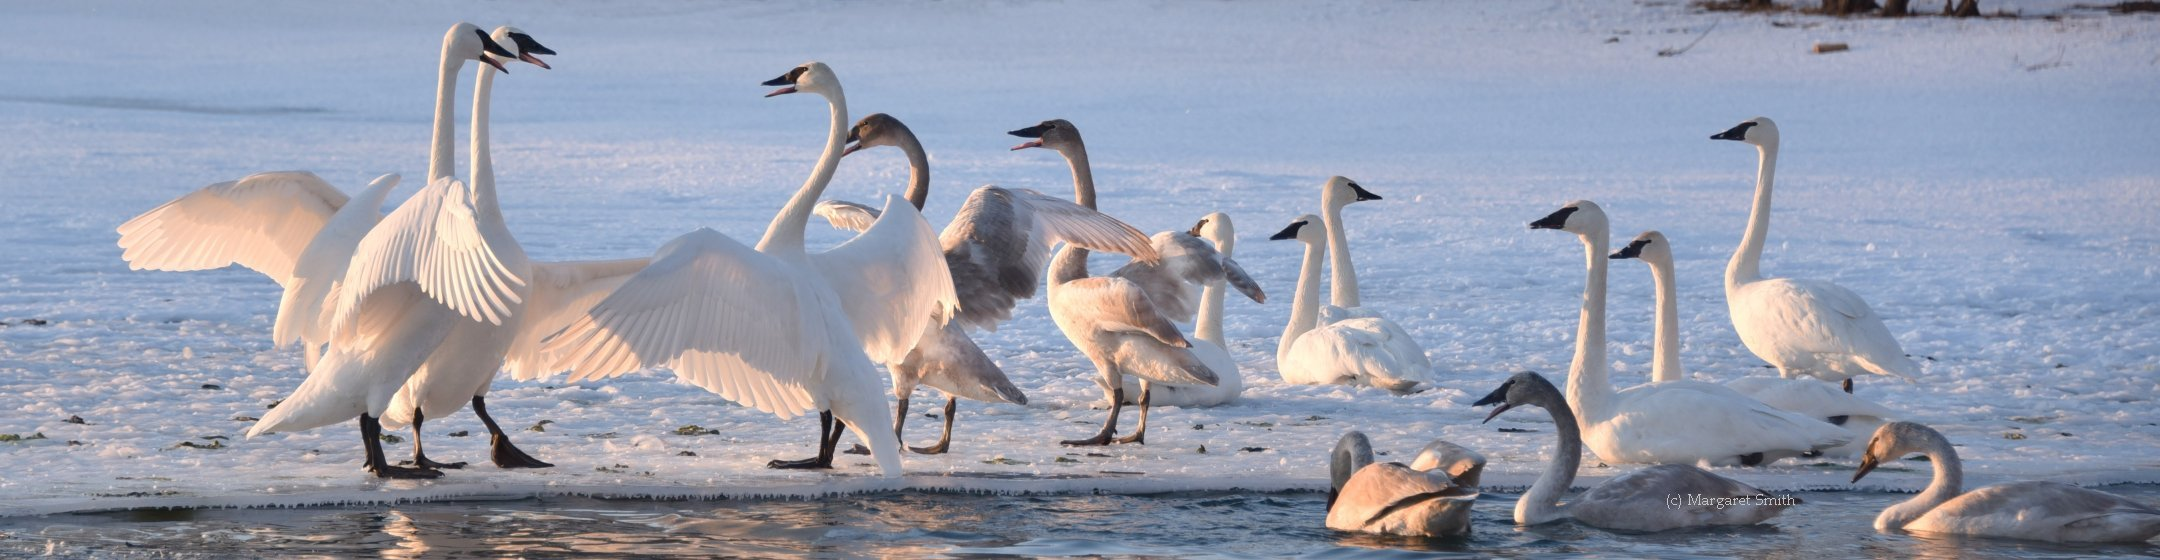 News about Trumpeter Swan issues, progress, events, and history are all found here